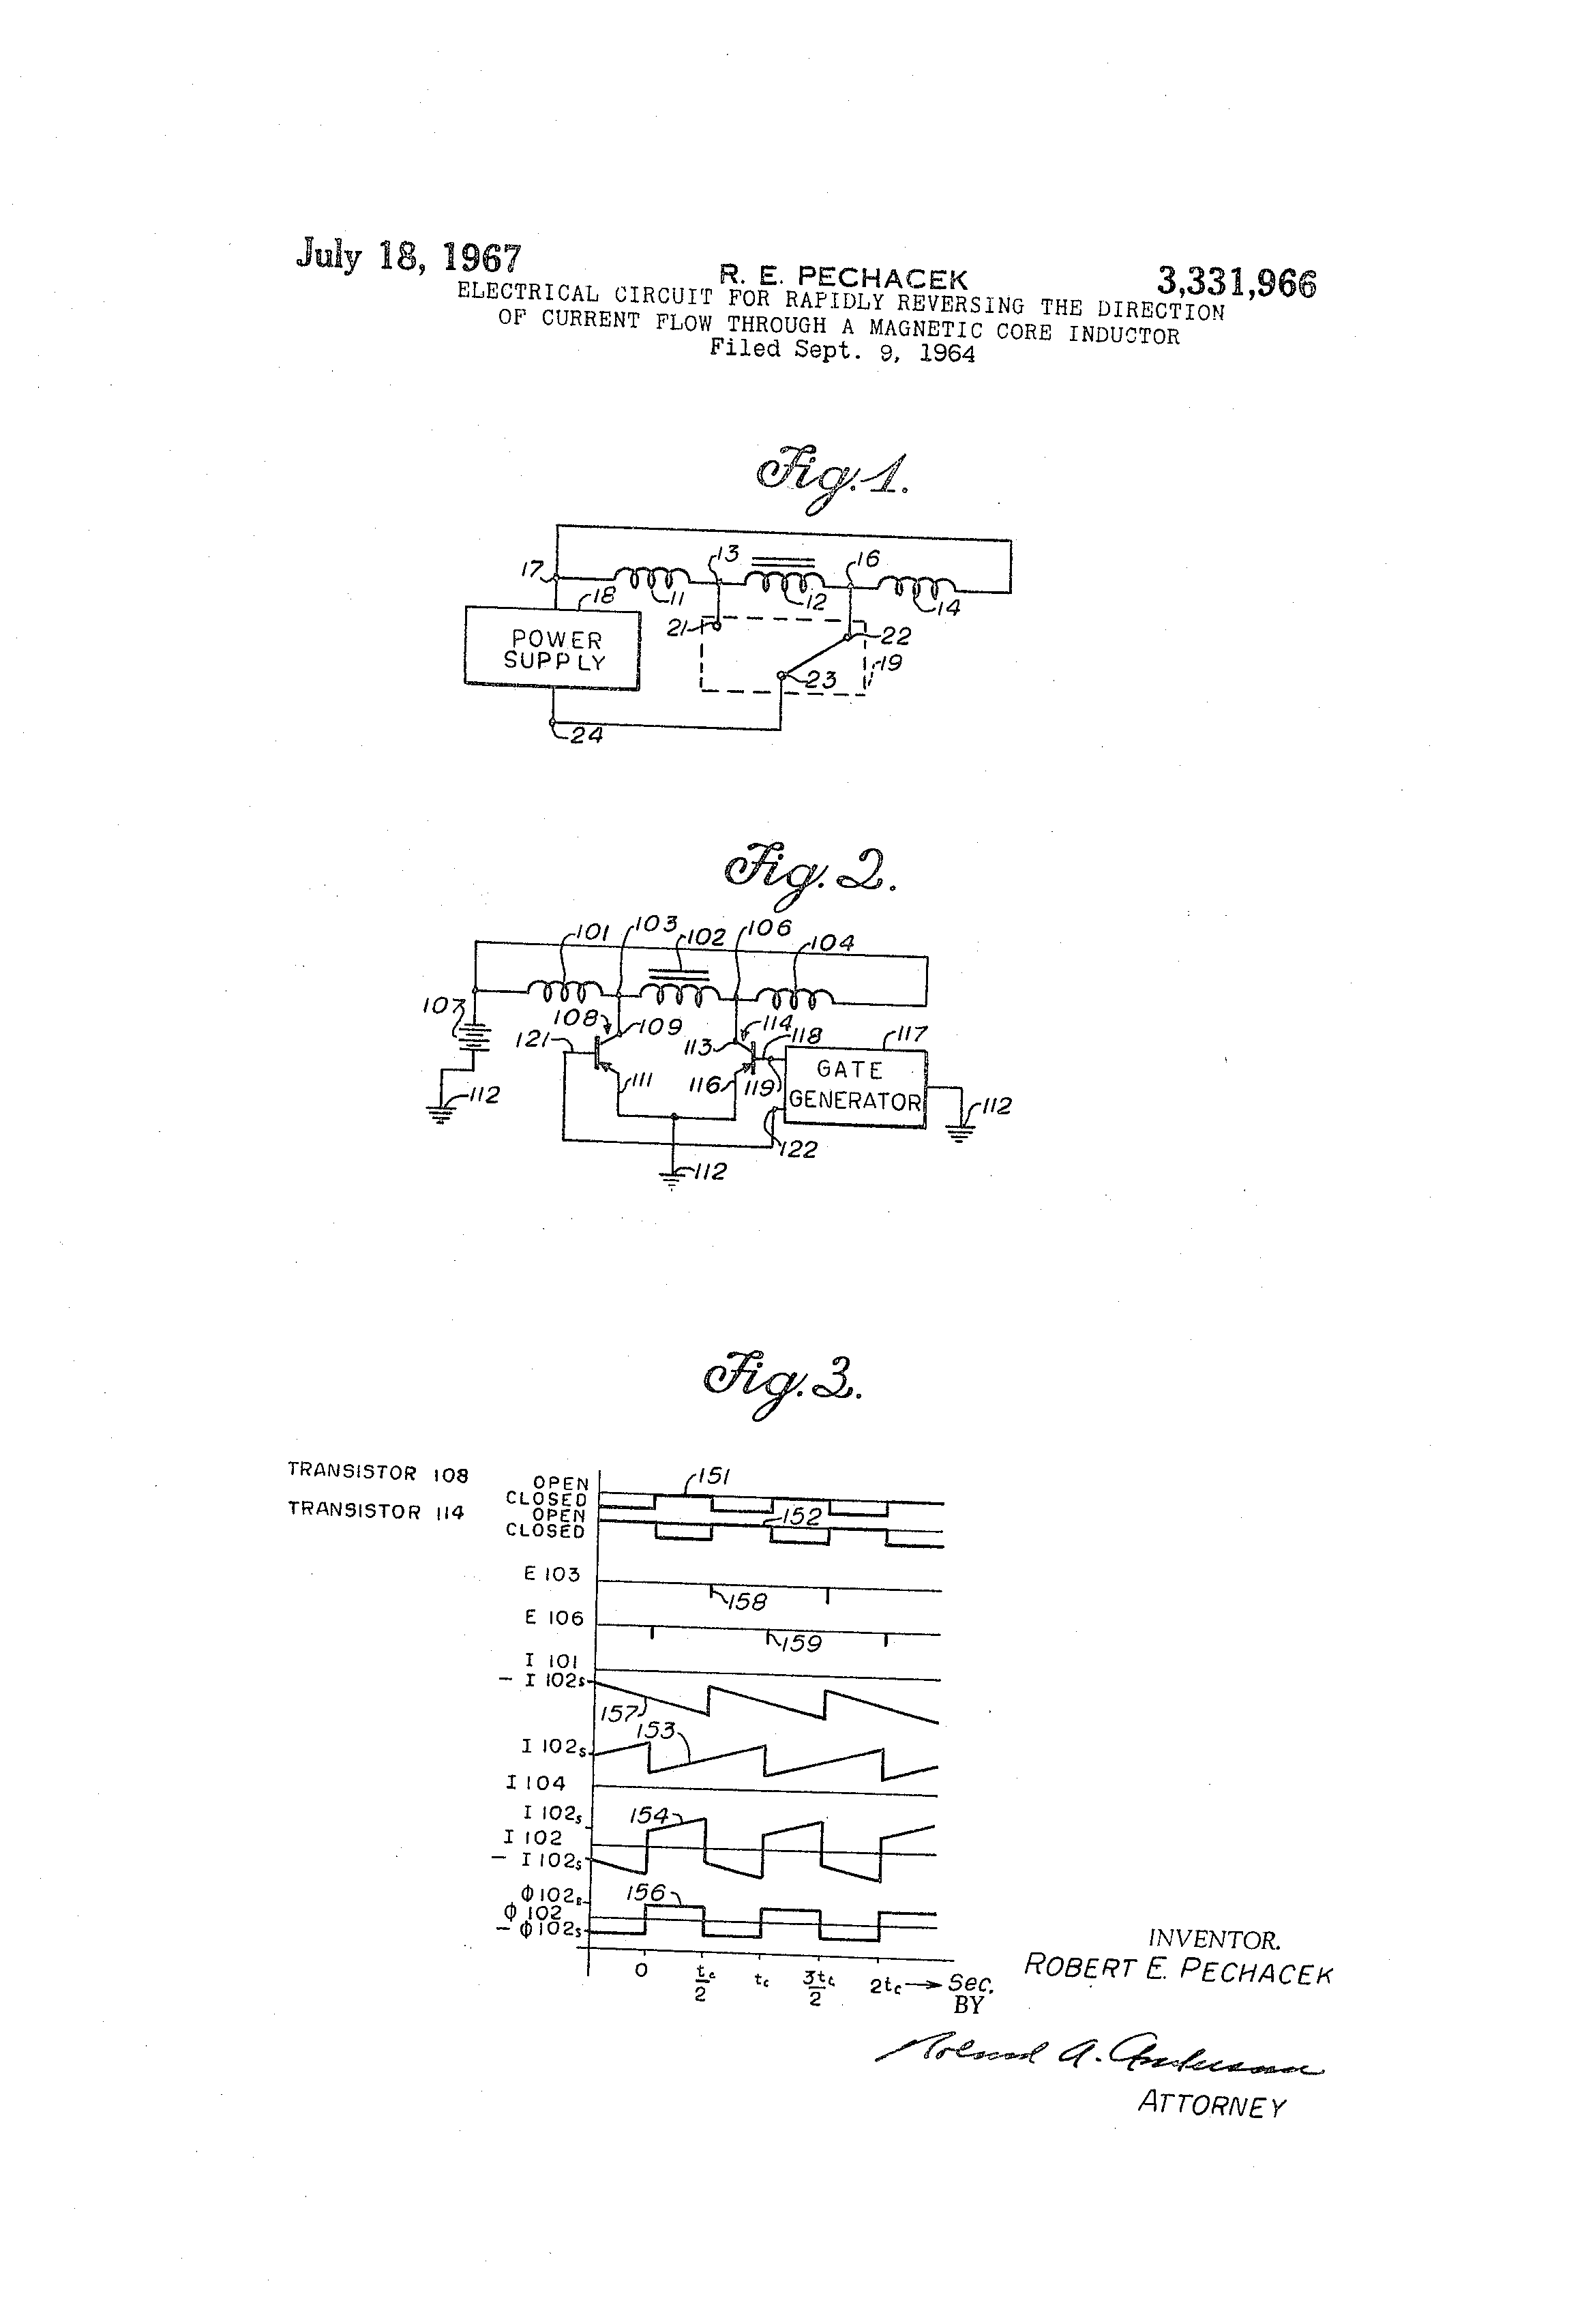 Patent Us3331966 Electrical Circuit For Rapidly Reversing The Direction Of Current In A Drawing